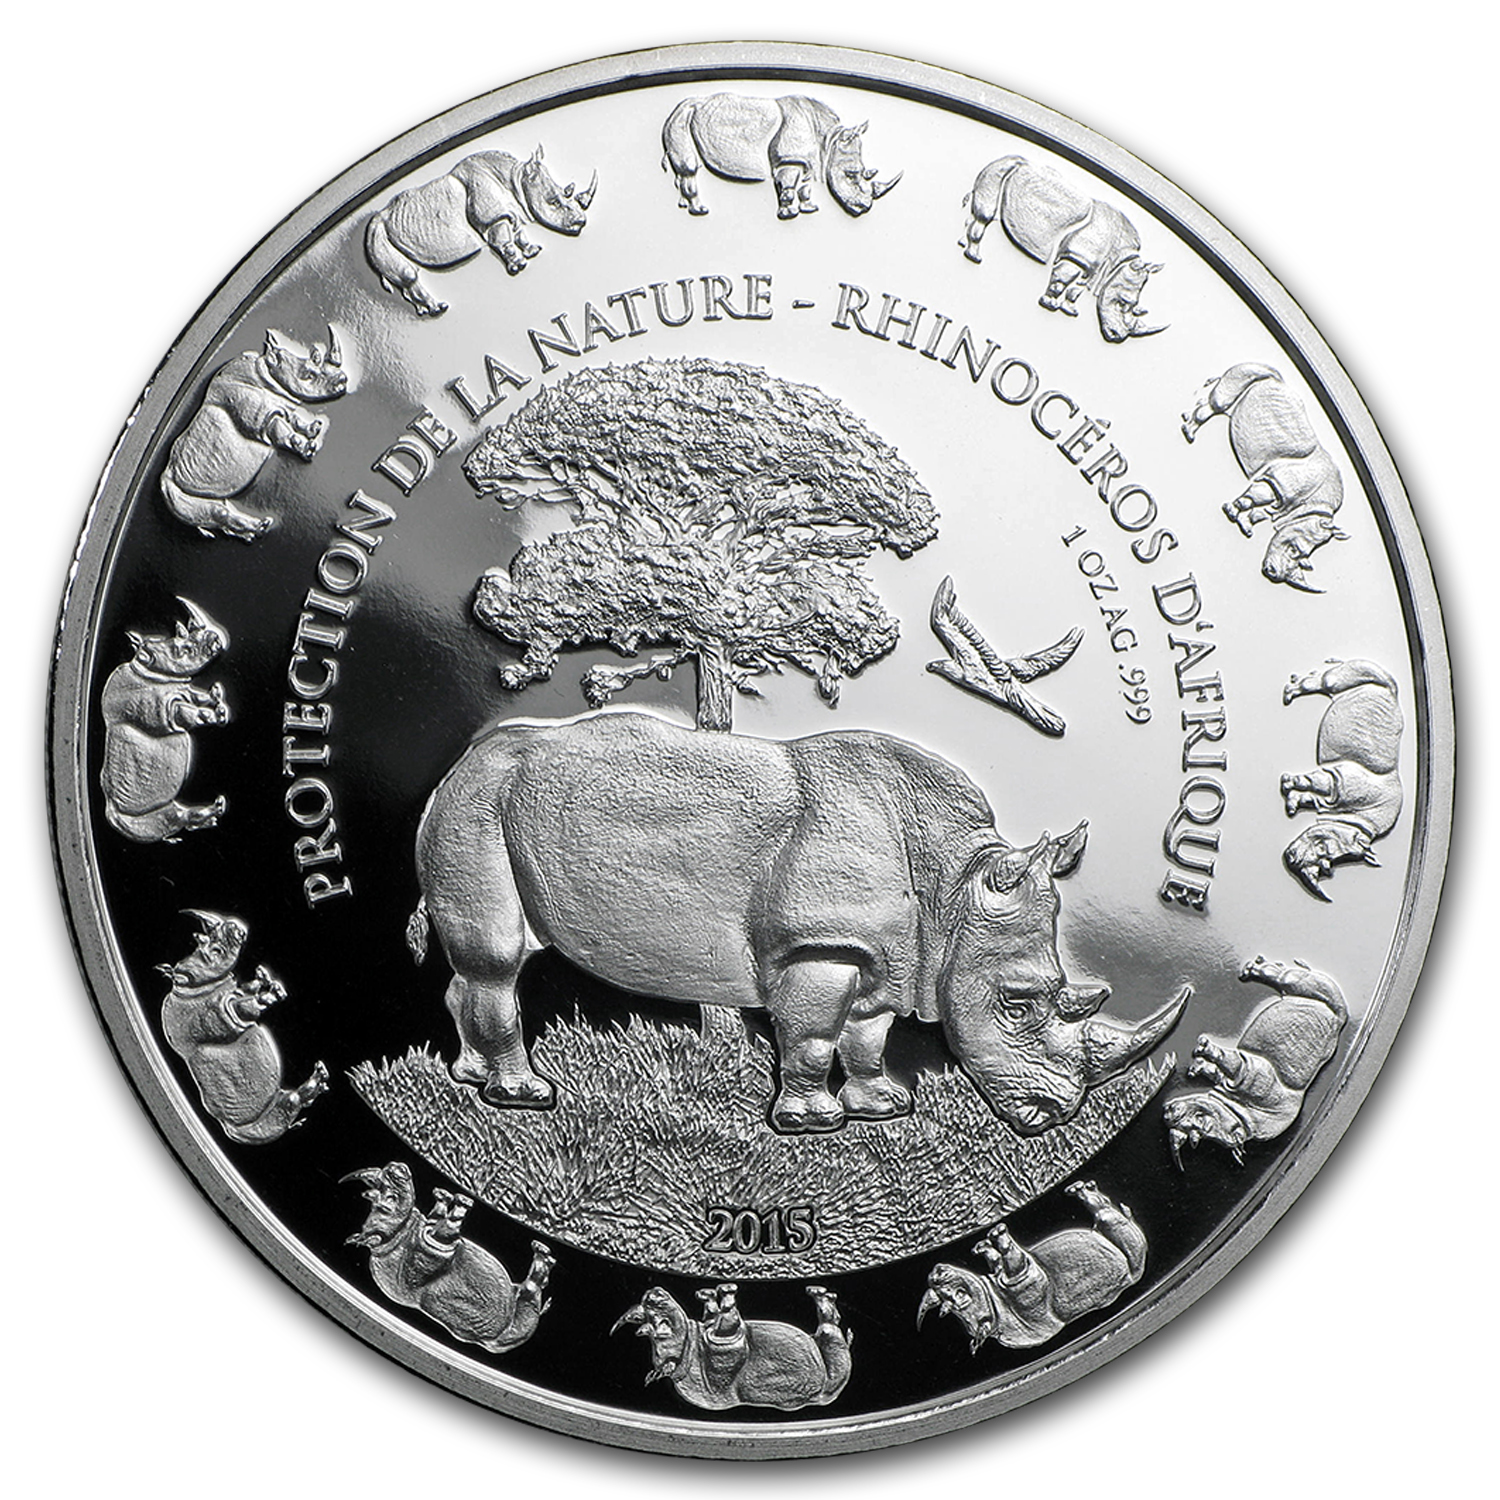 2015 Benin 1 oz Silver Protection de la Nature Rhino